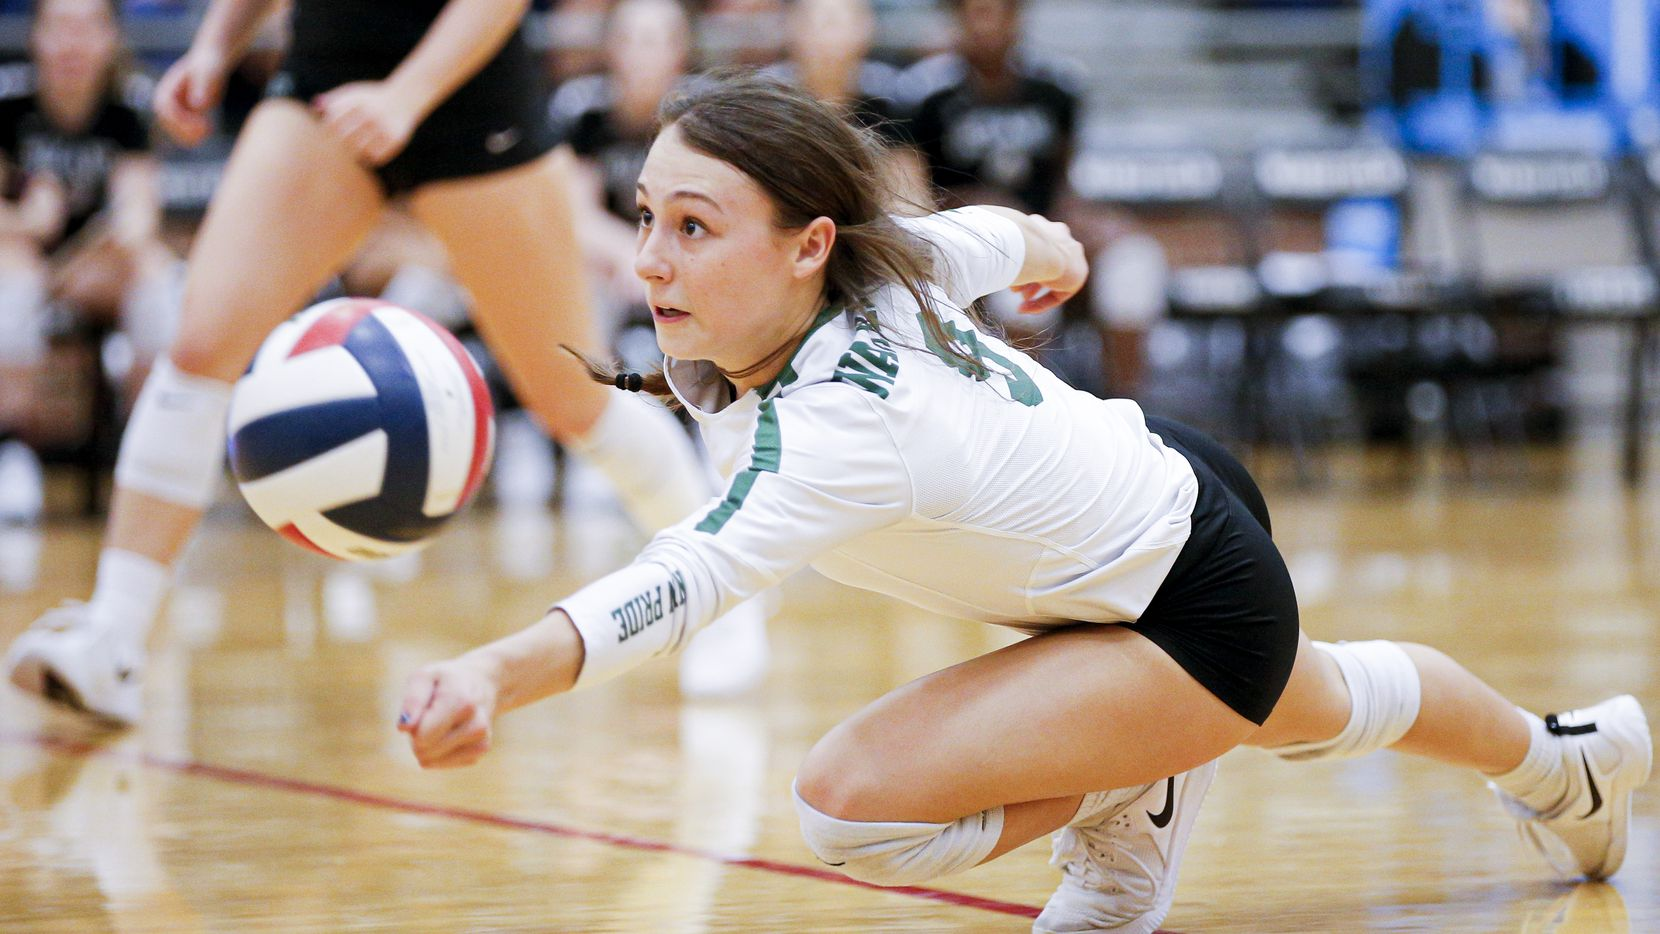 Waxahachie senior Baylee Whitehead (9)  dives for the ball during a match against Mansfield on September 24, 2019. (Brandon Wade/Special Contributor)